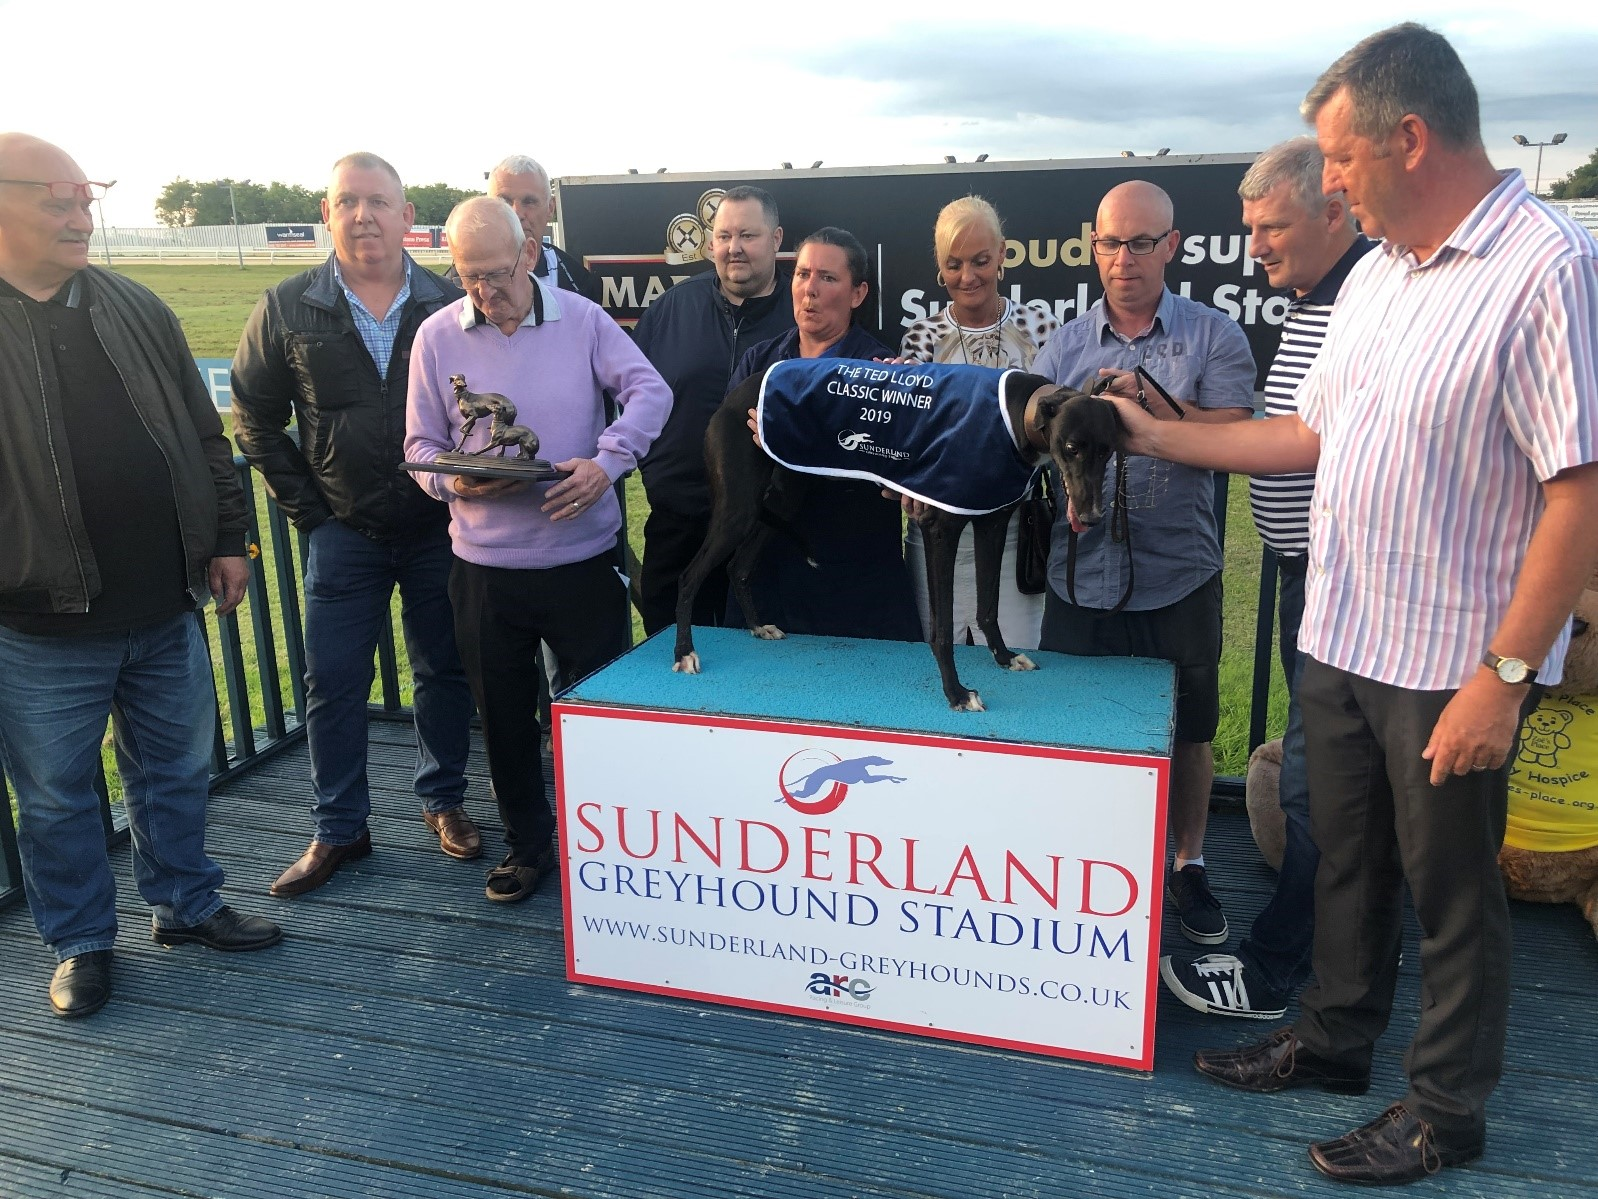 Sunderland Classic Presentation with The Conlon Family